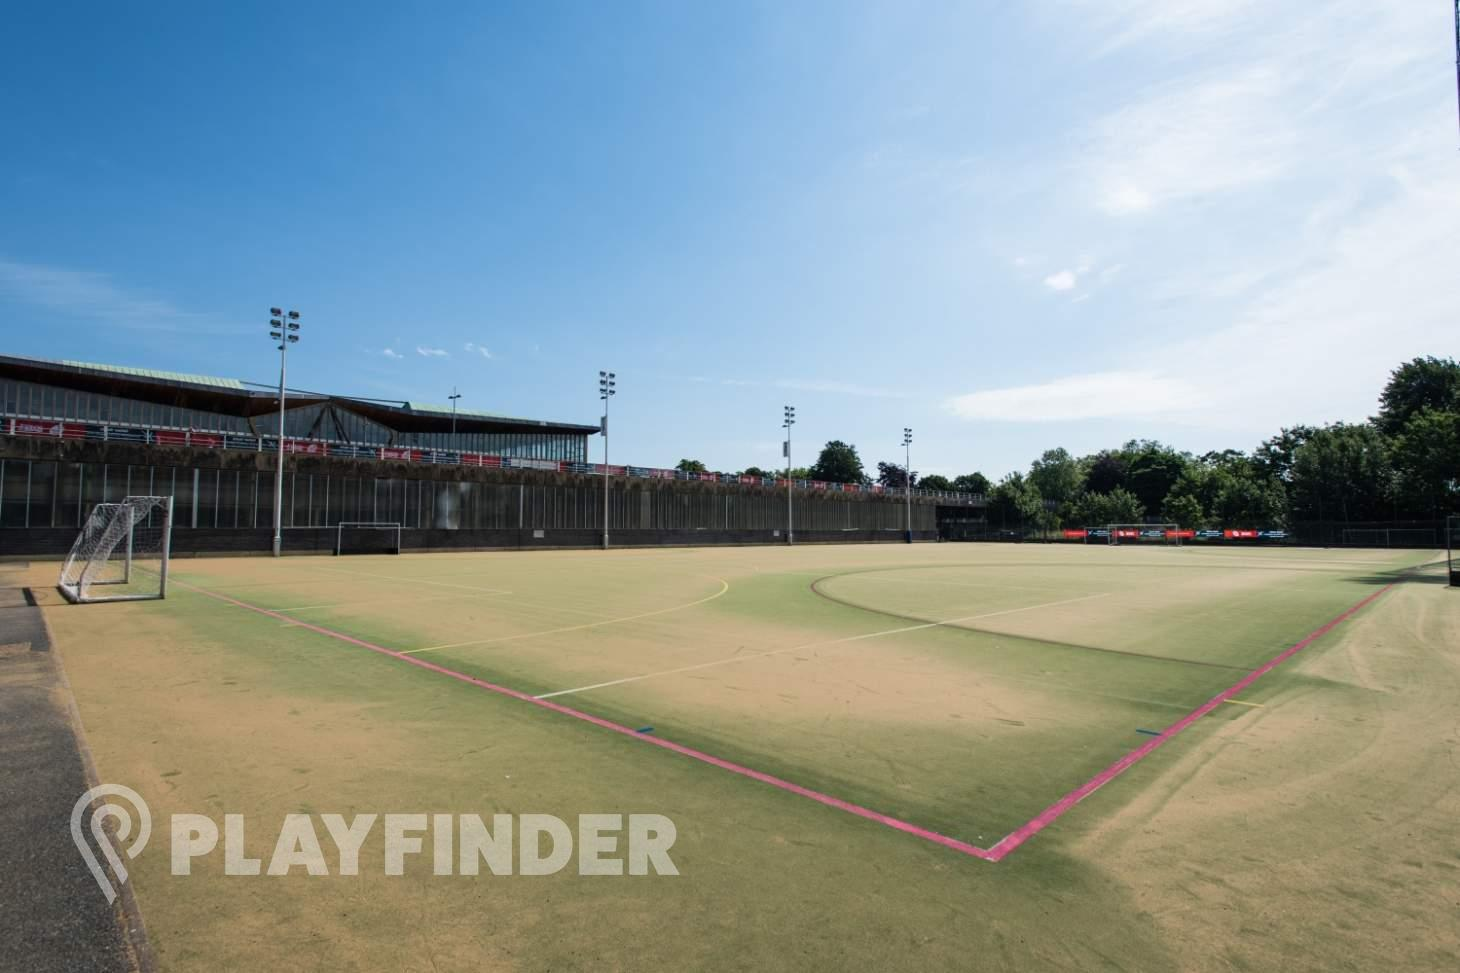 Crystal Palace National Sports Centre 7 a side | Astroturf football pitch